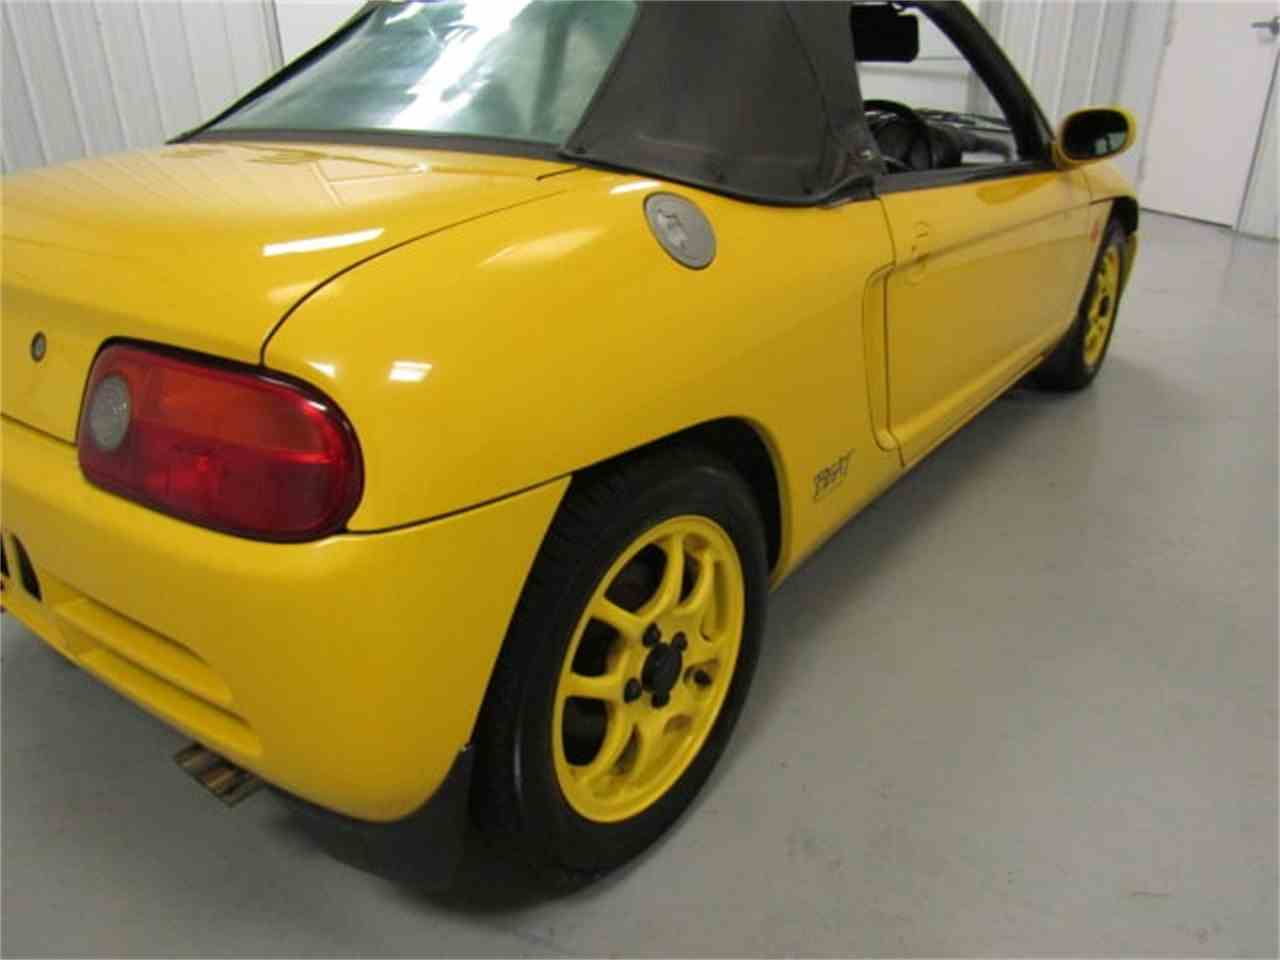 Large Picture of 1991 Honda Beat located in Virginia - $9,992.00 Offered by Duncan Imports & Classic Cars - JL6O